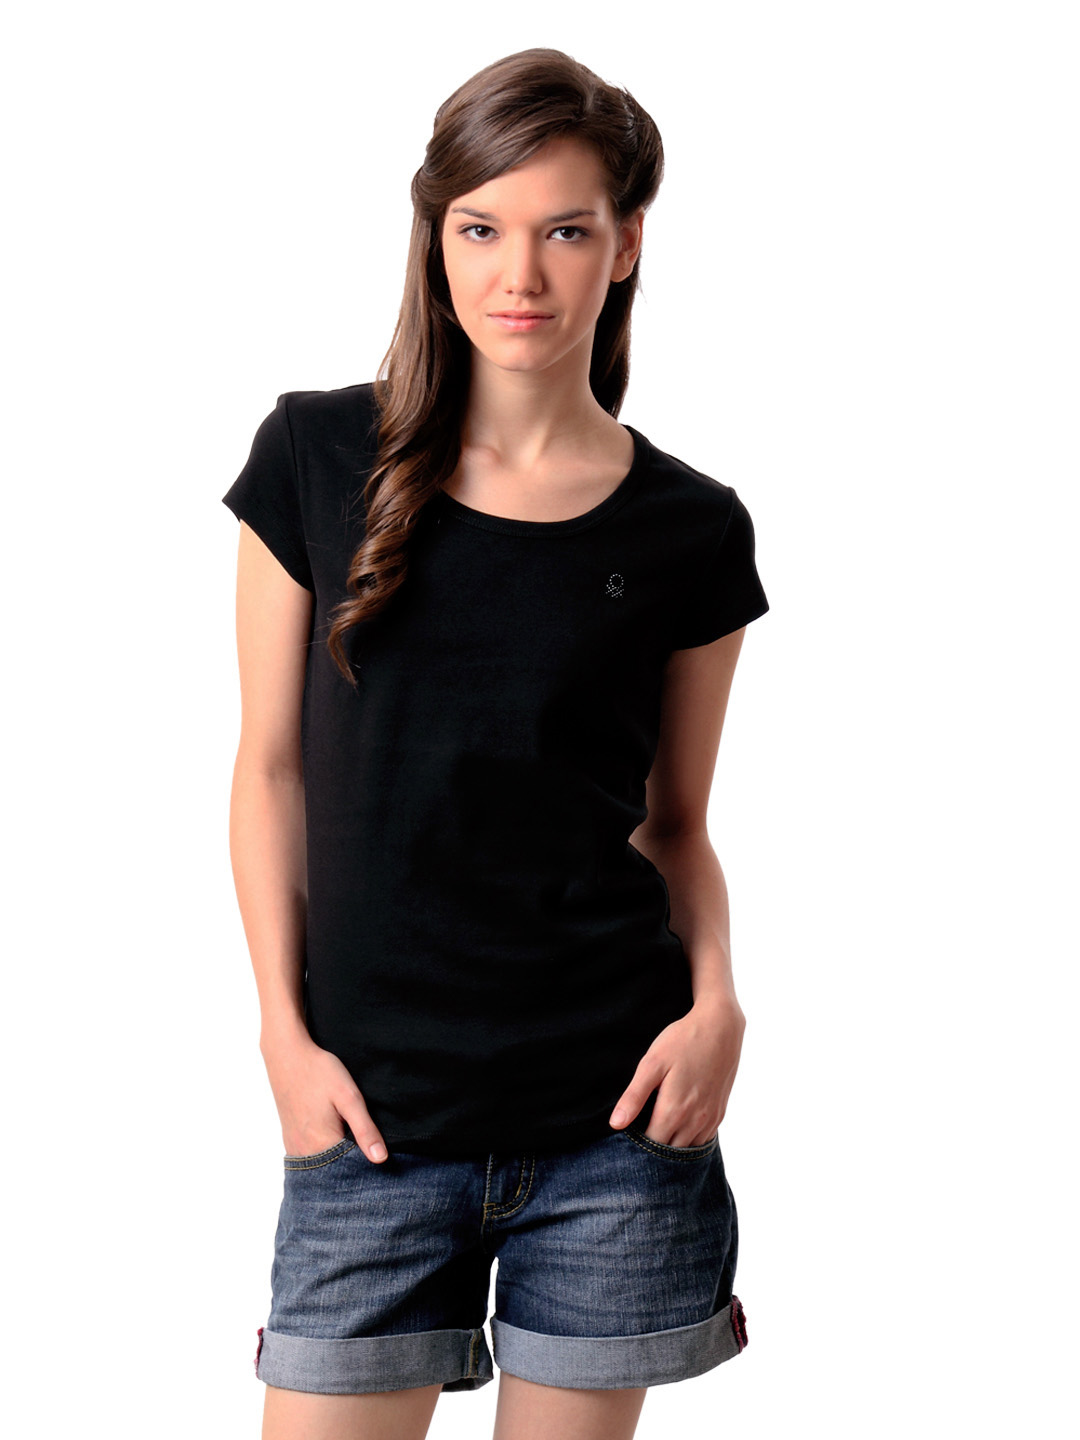 black t shirt model woman - photo #18